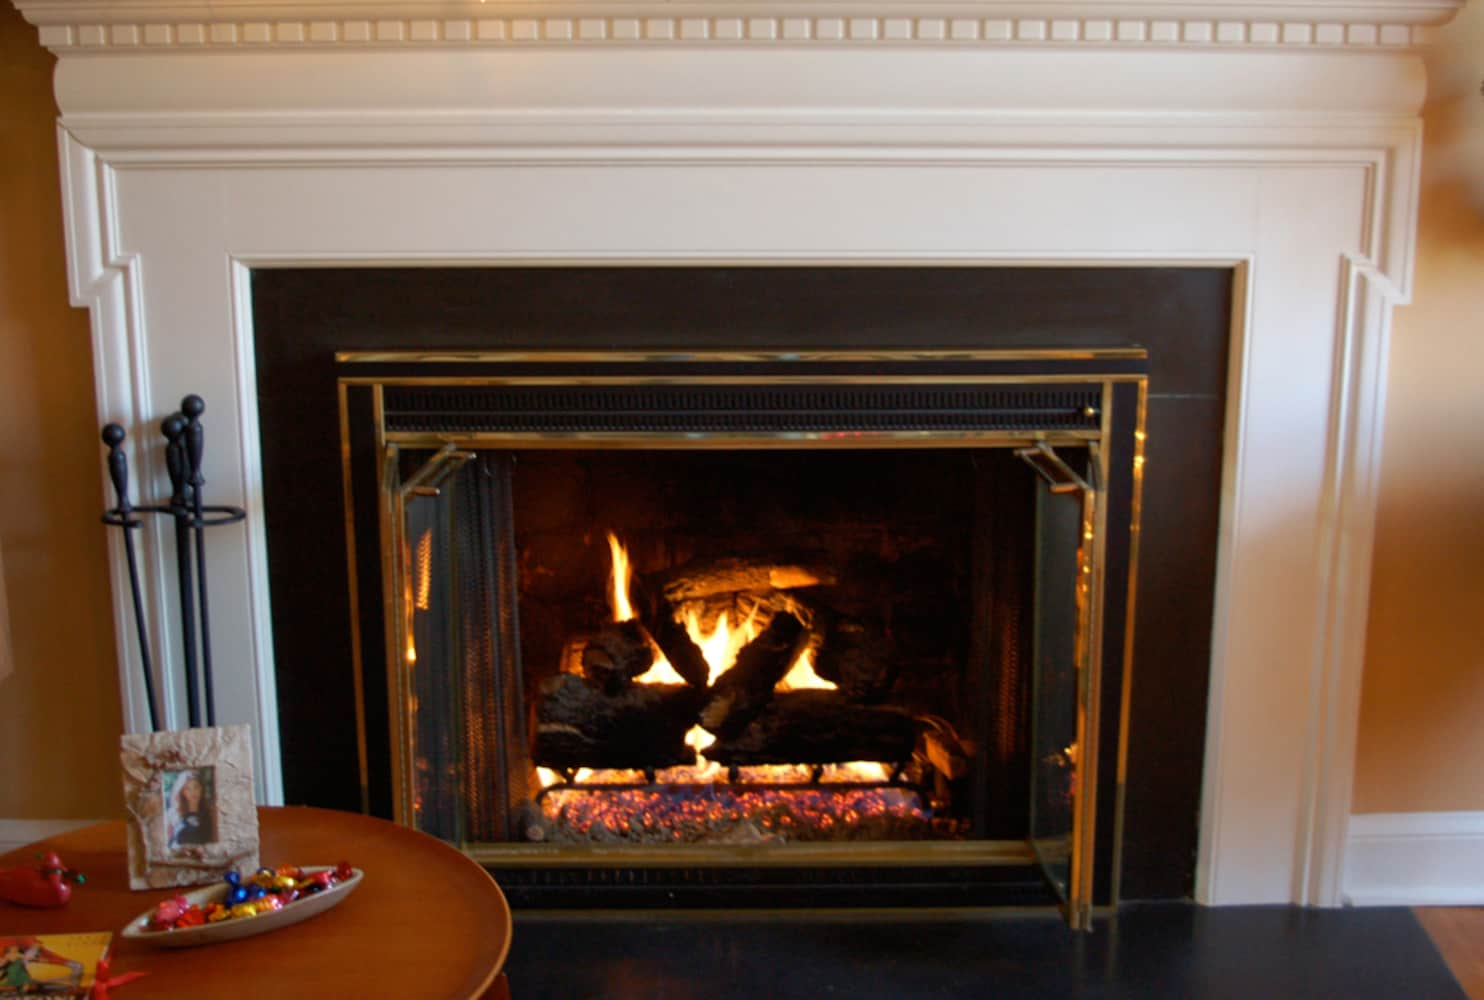 Gas Fireplace Starter Pipe How To Options For Converting A Fireplace To Natural Gas The